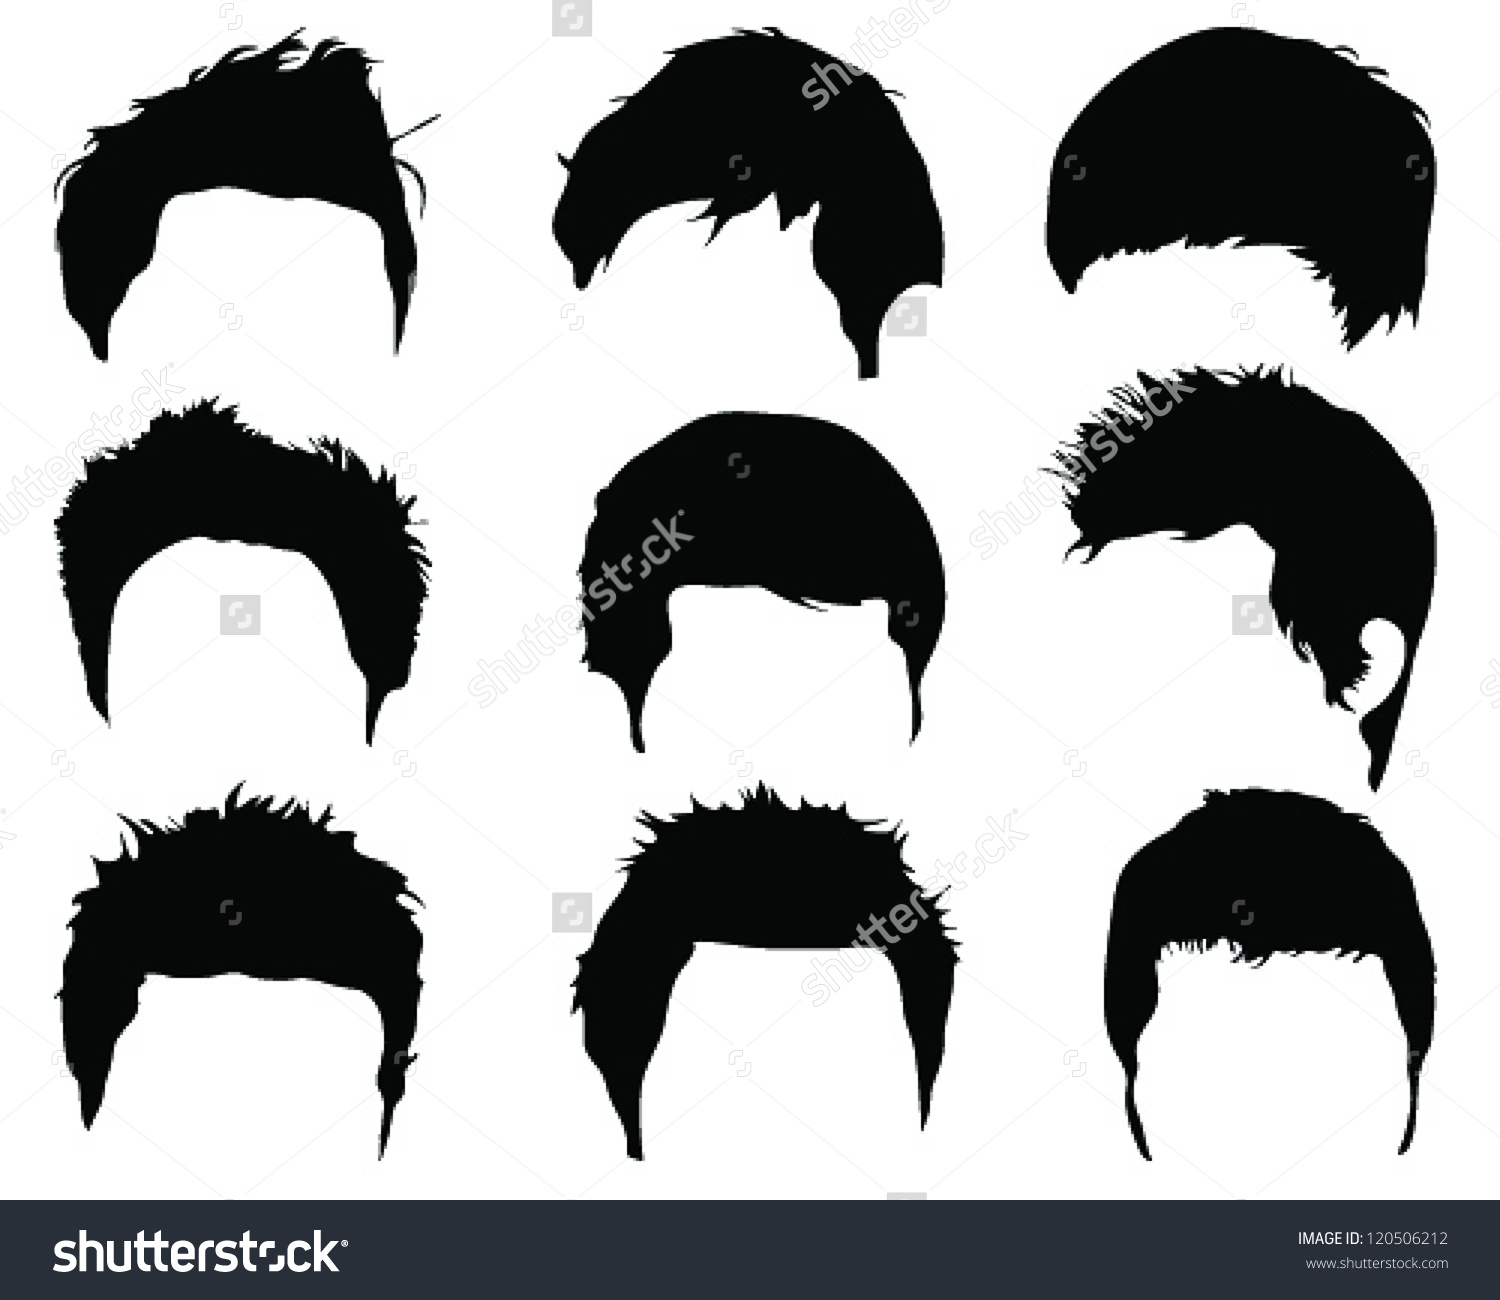 Photos clipart hairstyle #1